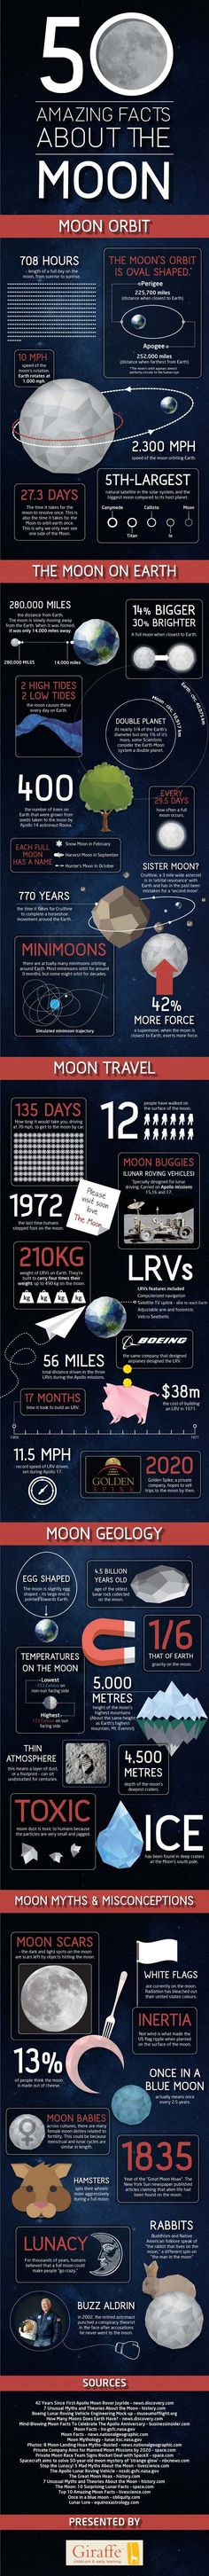 What we Know about Moon - iNFOGRAPHiCs MANiA